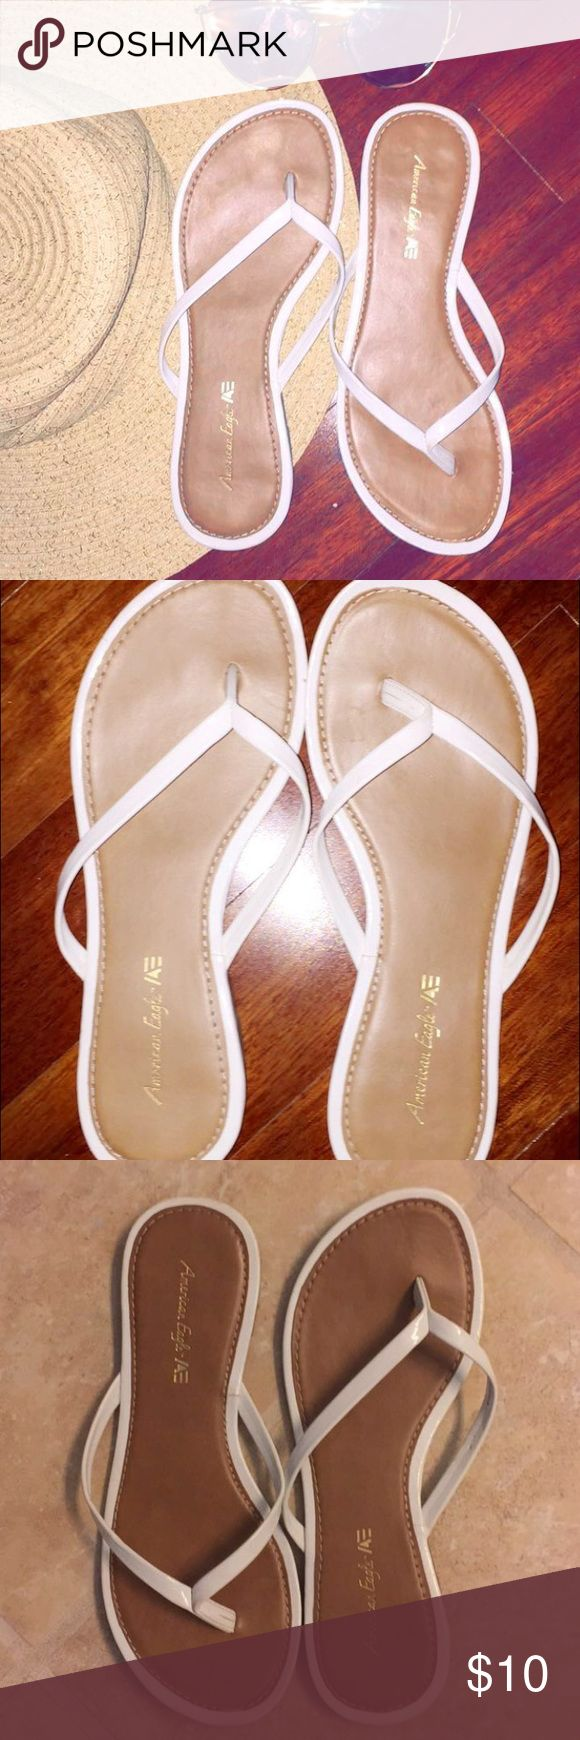 American Eagle Flip Flops 6 Dressy flip flops in white and tan by American Eagle in size 6. Comfortable & used once! American Eagle Outfitters Shoes Sandals